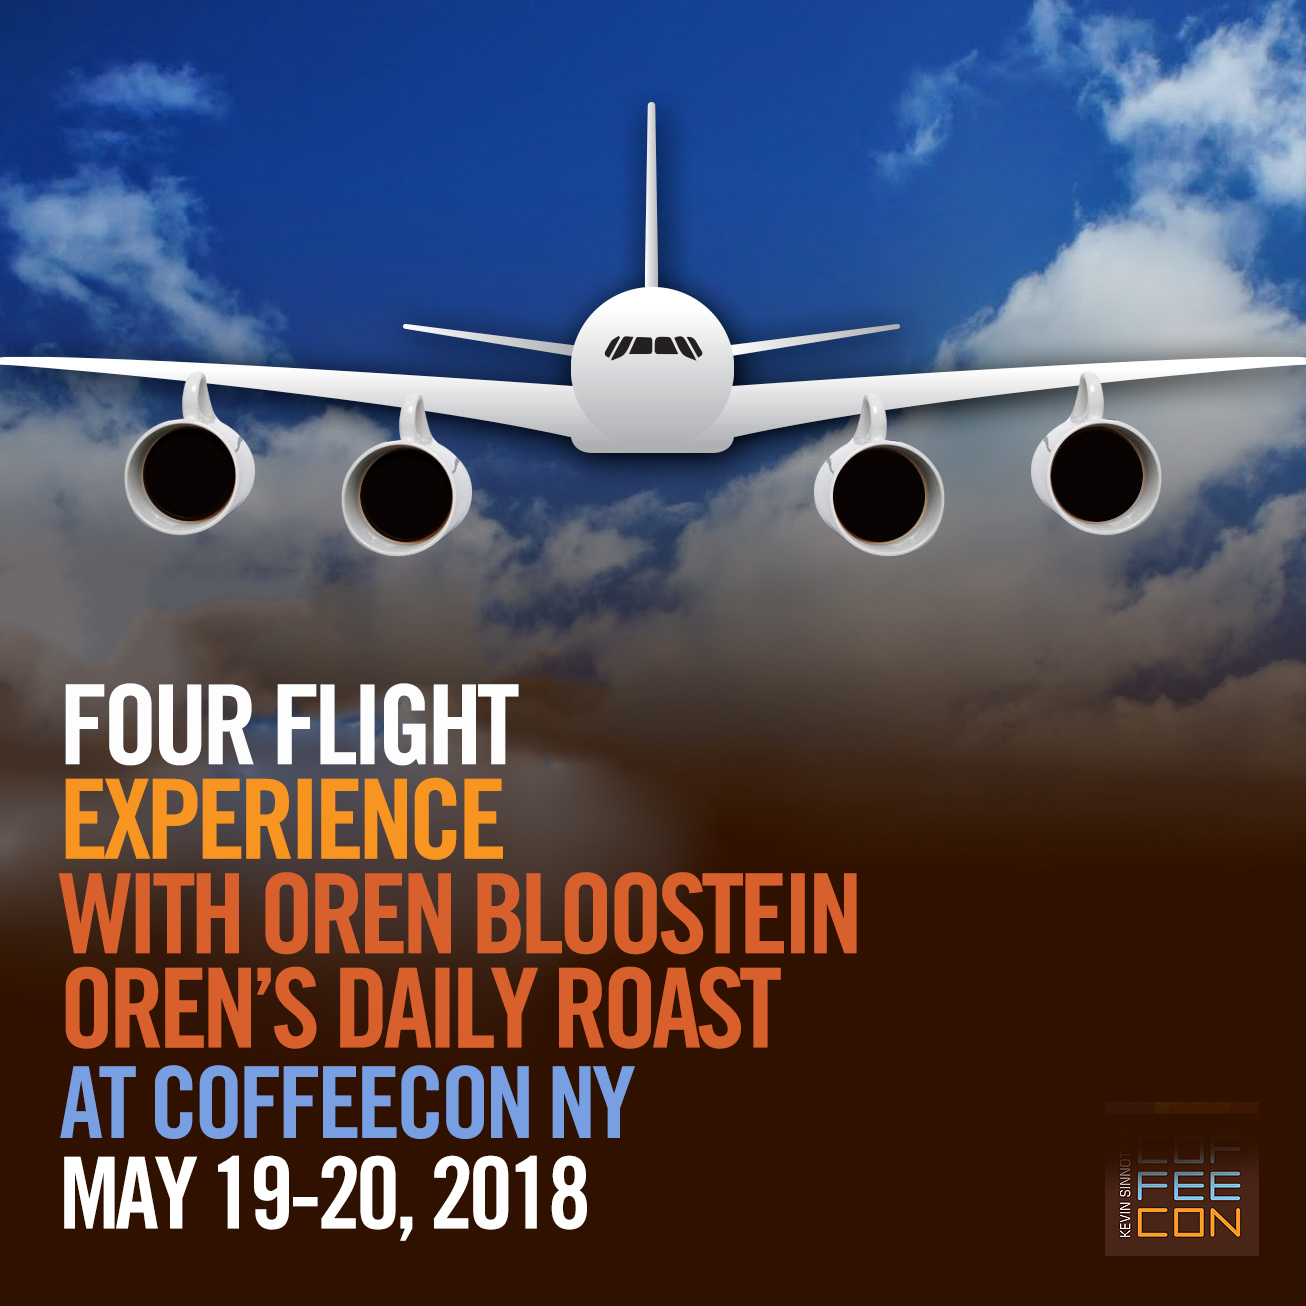 Four Flight Experience with Oren Bloostein at CoffeeConNY